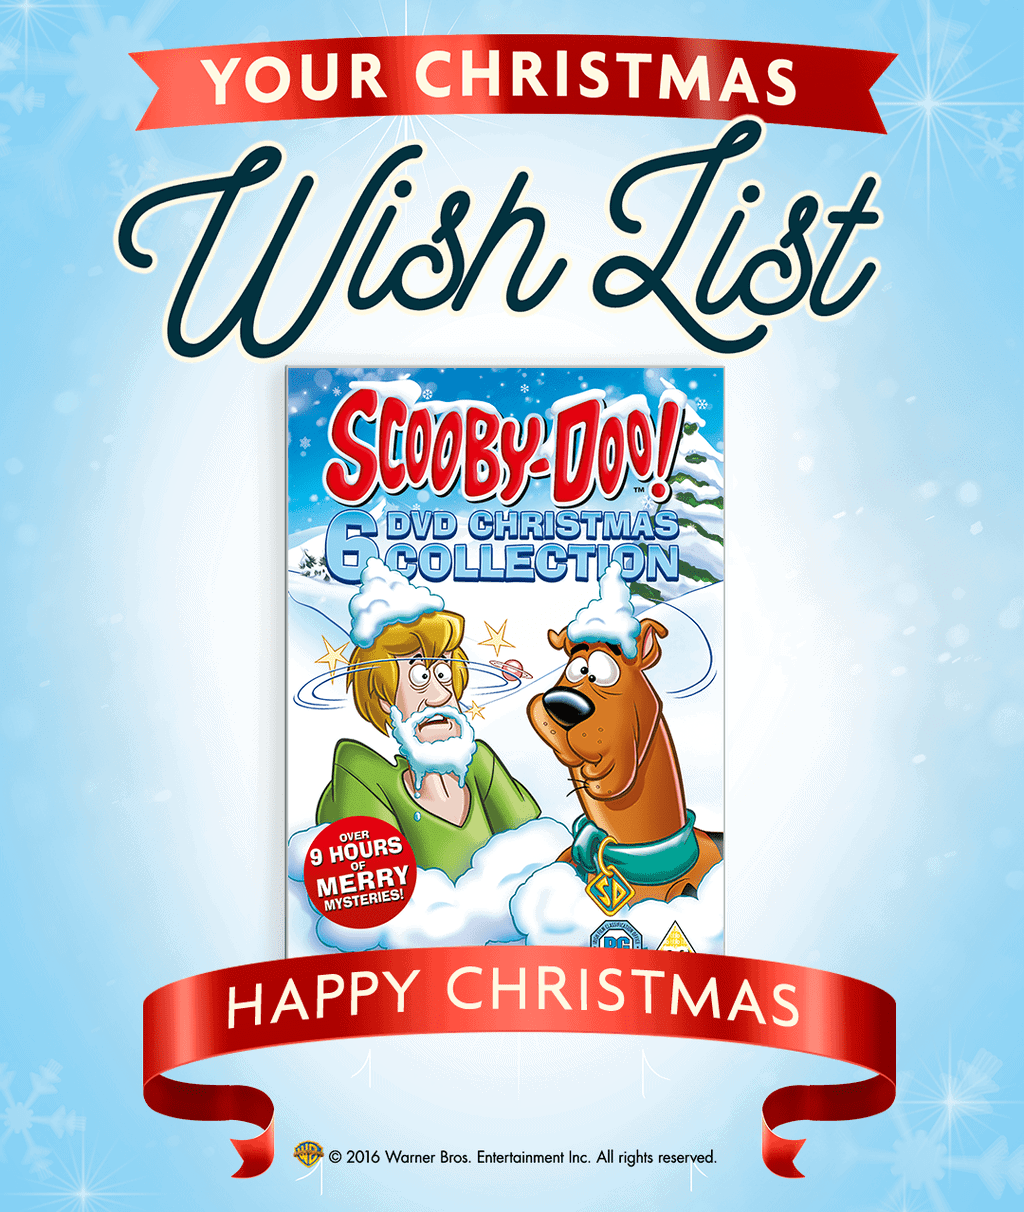 Scooby-Doo! 6 DVD Christmas Collection